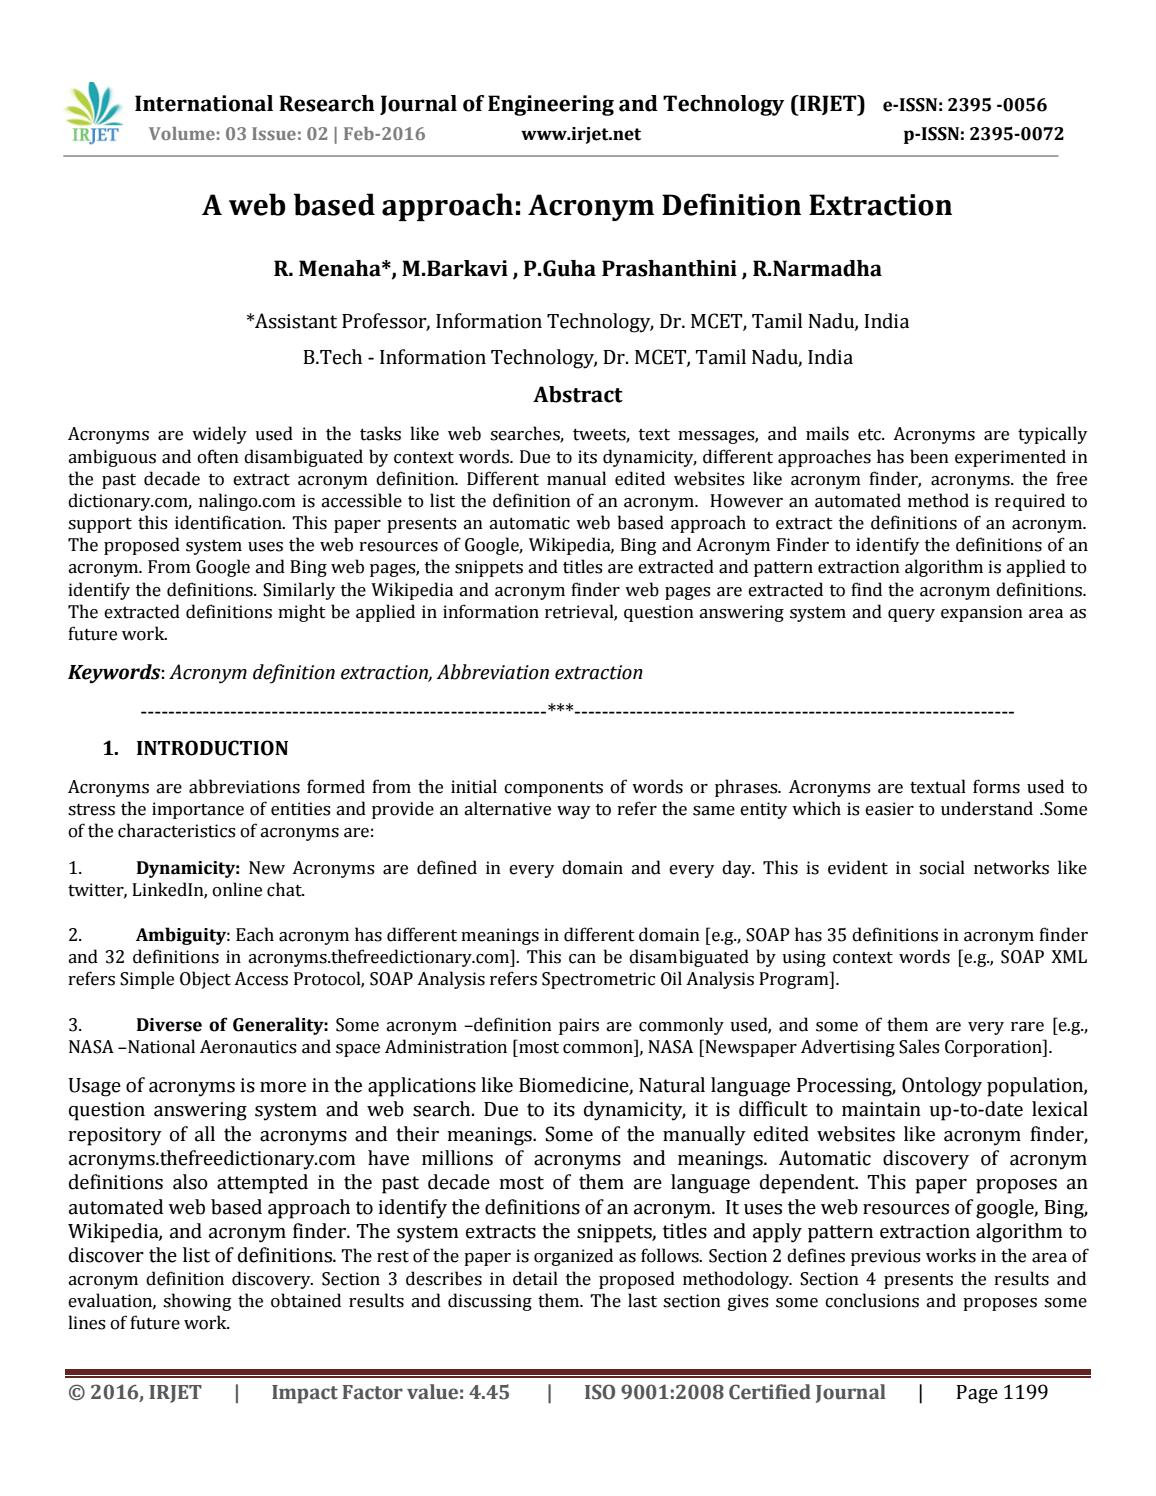 A web based approach: Acronym Definition Extraction by IRJET Journal